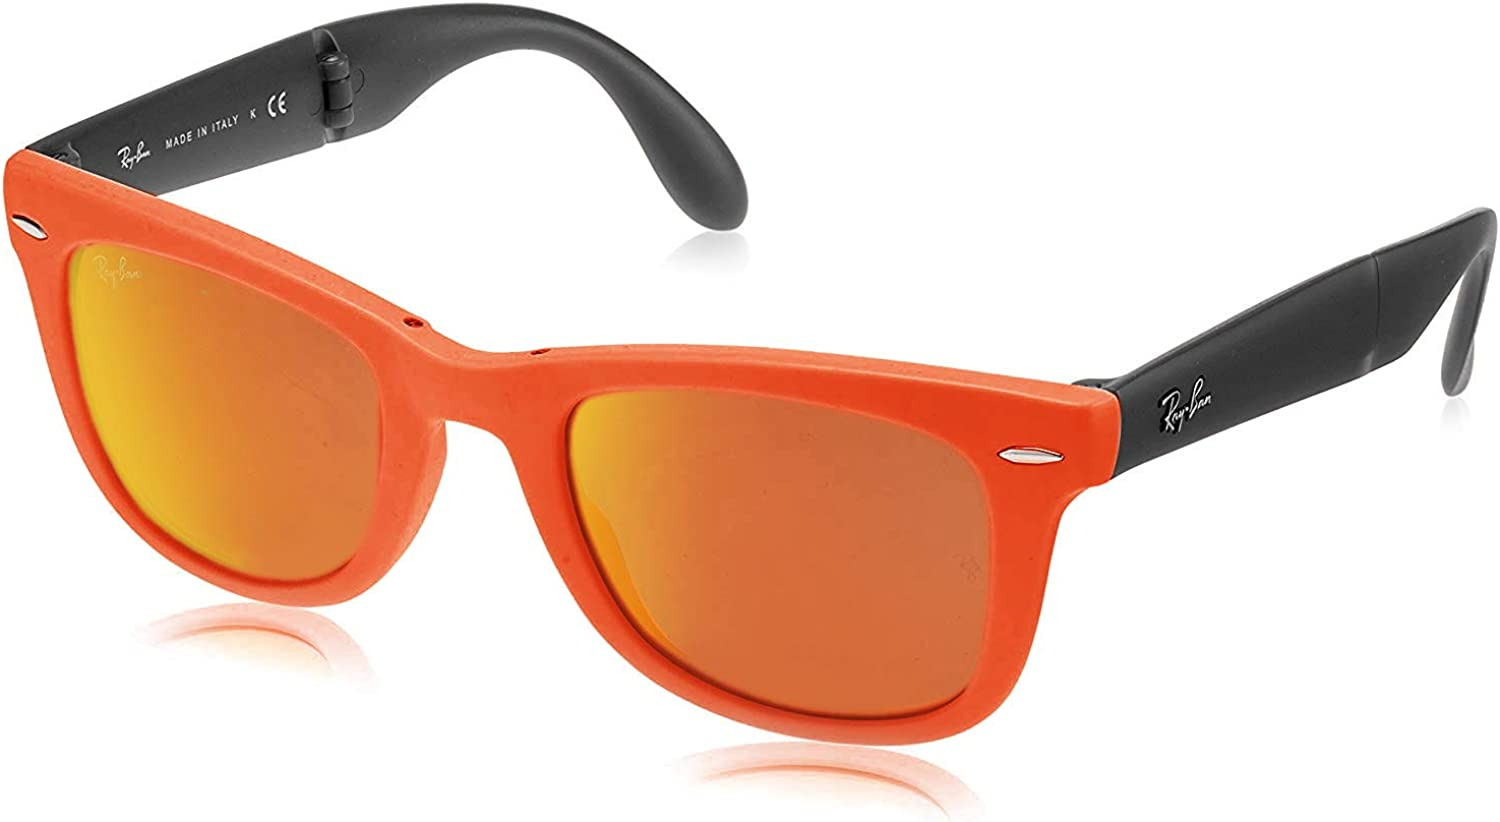 Ray-Ban Folding Wayfarer Montures de Lunettes Mixte Orange (601969 601969)